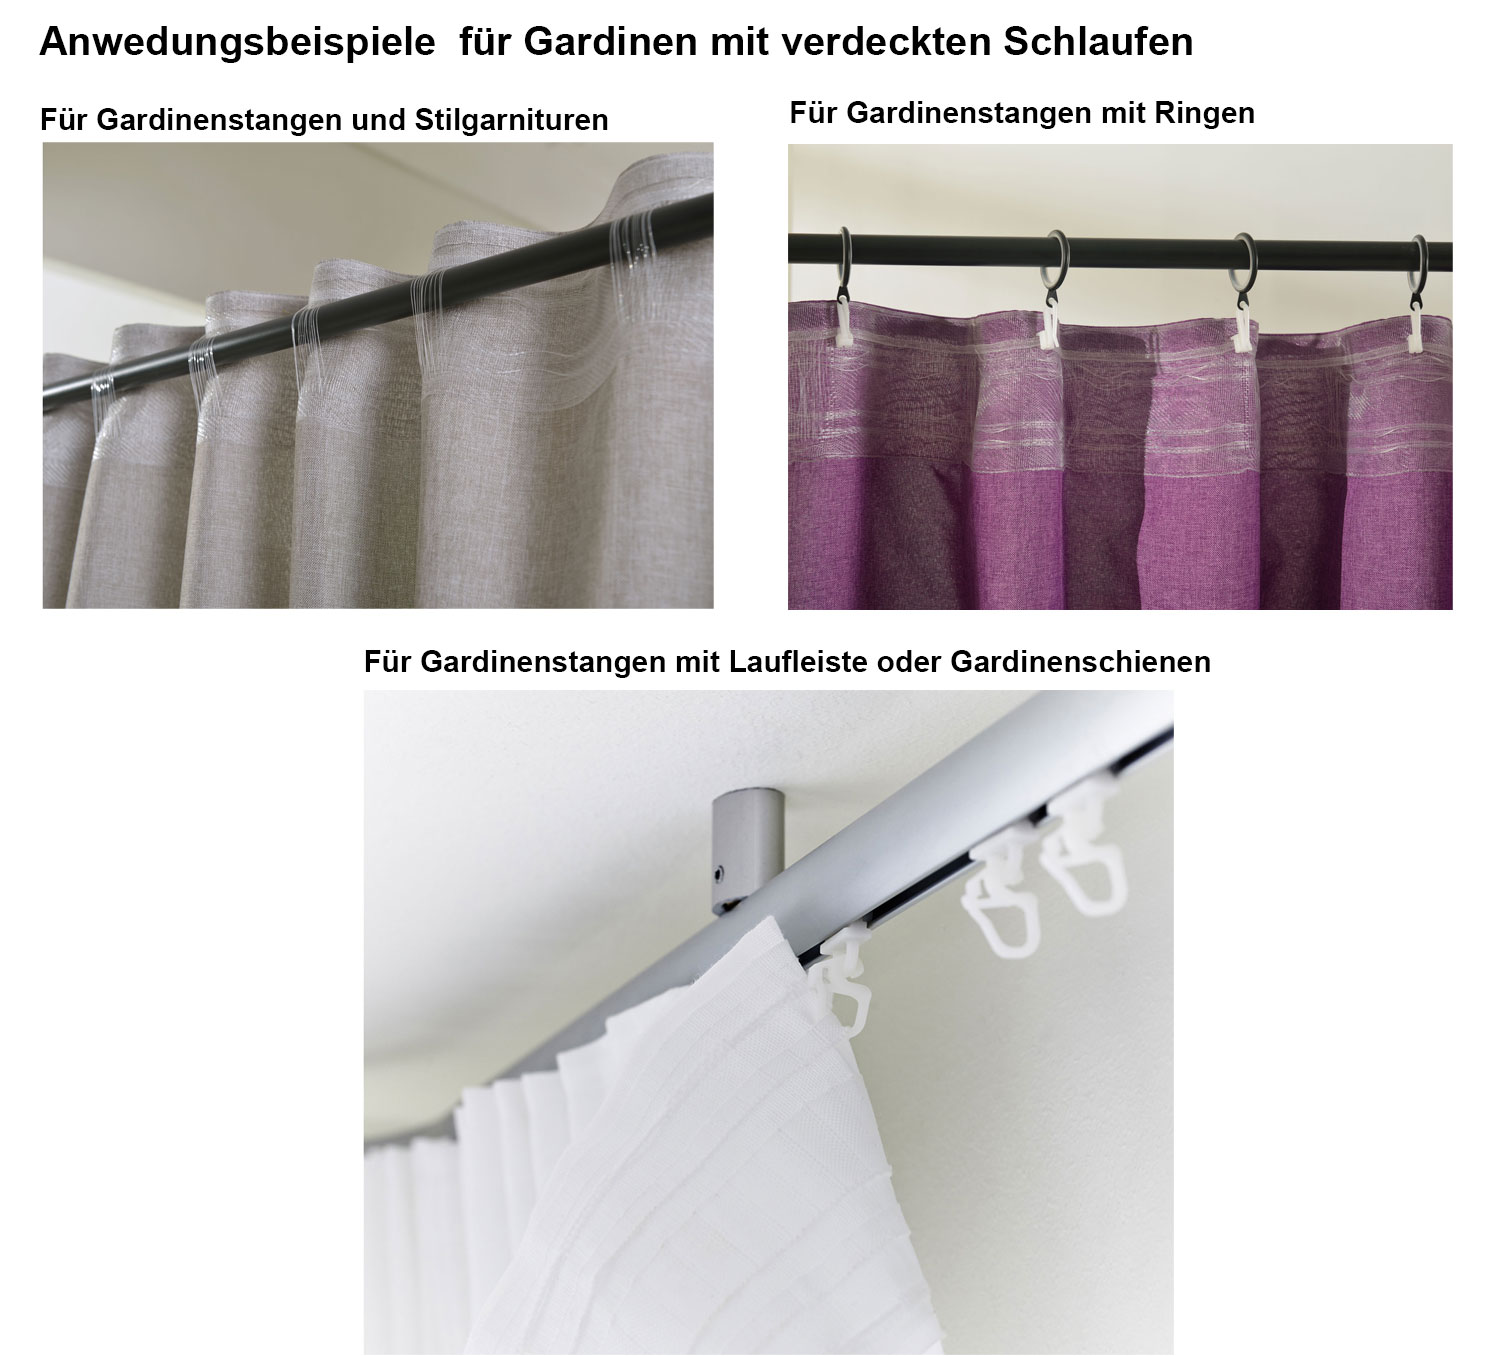 Leinen Gardinen Transparent Gardine Webstruktur Leinen Optik Transparent Verdeckte